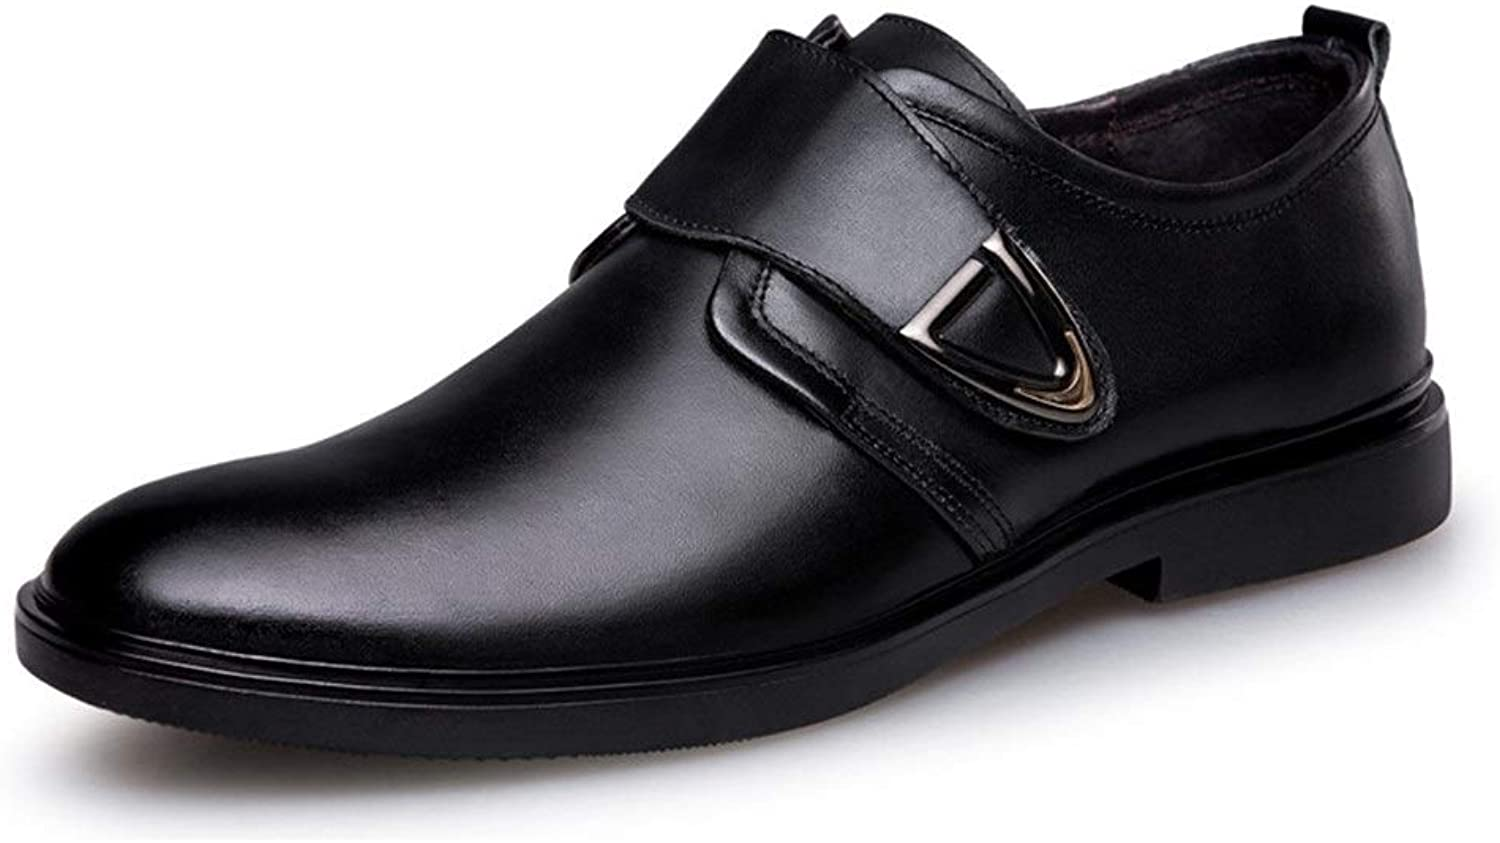 Oxfords for Men Round Toe Business Casual Loafers Slip On Formal Fashion Dress shoes Hook&Loop Strap Leather Upper Durable Abrasion Resistant Cricket shoes ( color   Black , Size   5.5 UK )